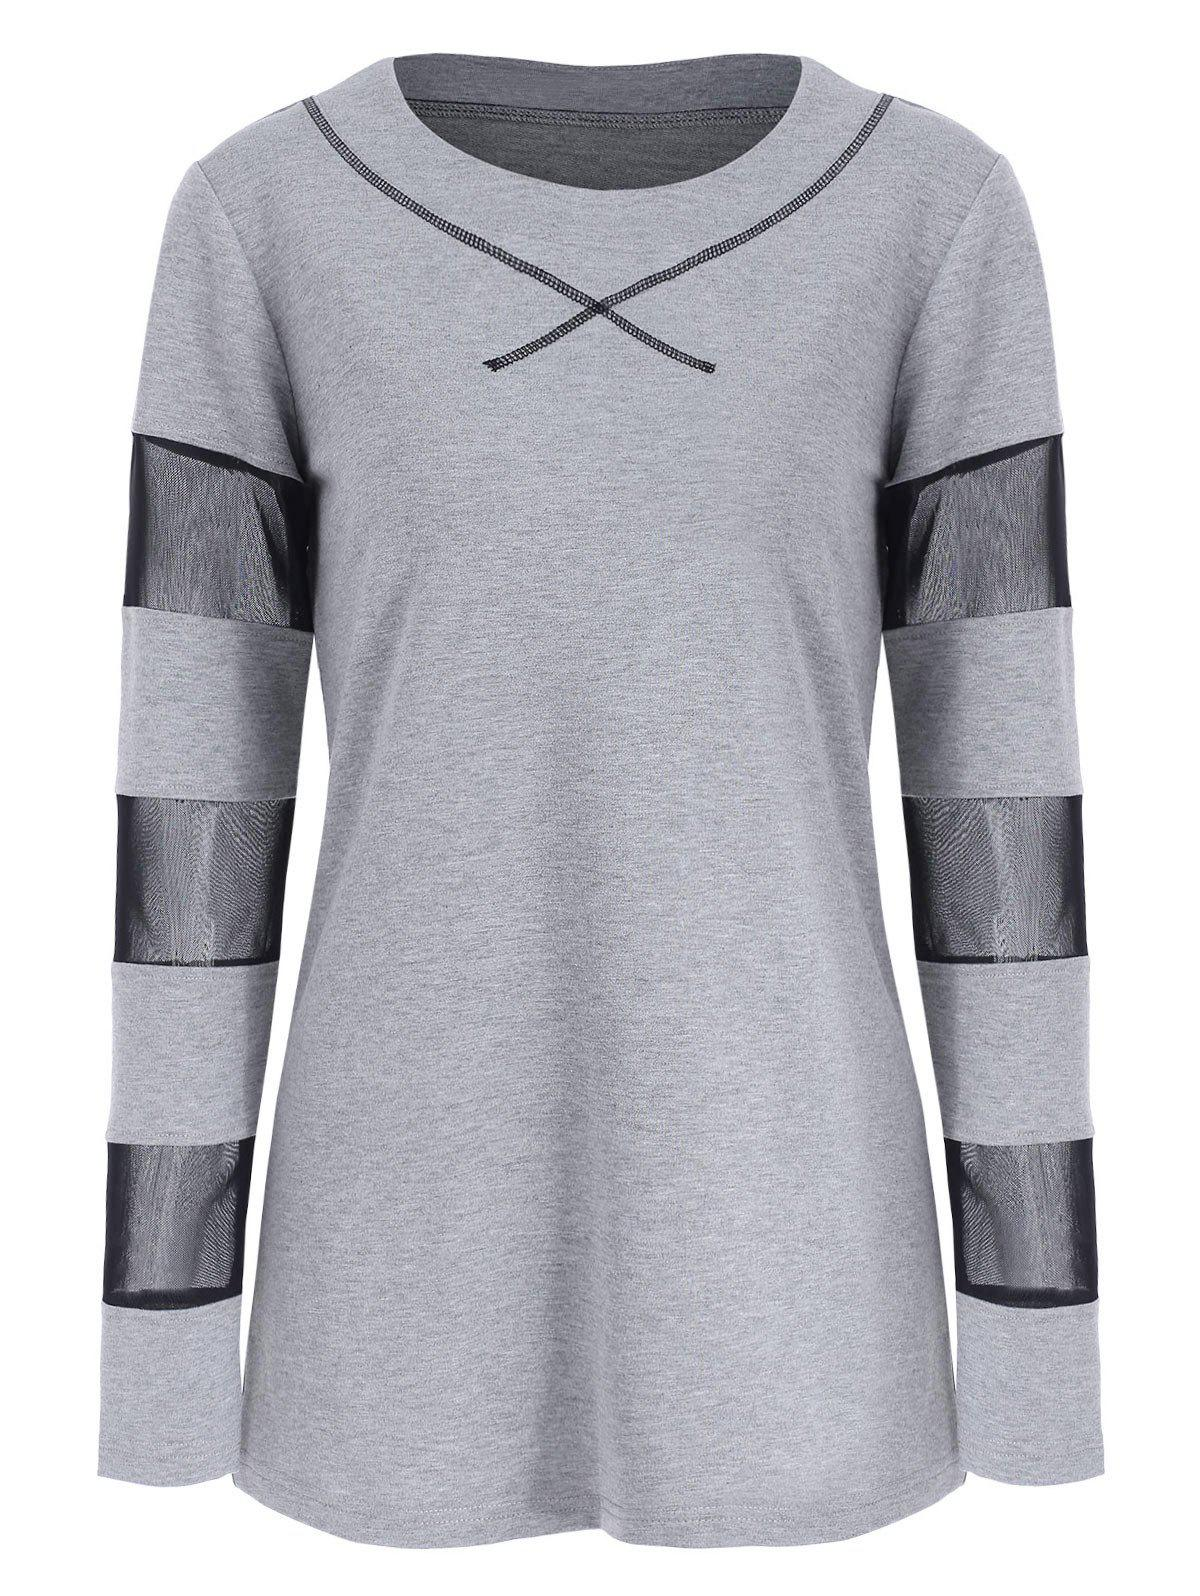 Outfits Full Sleeve See through Mesh Insert T-shirt